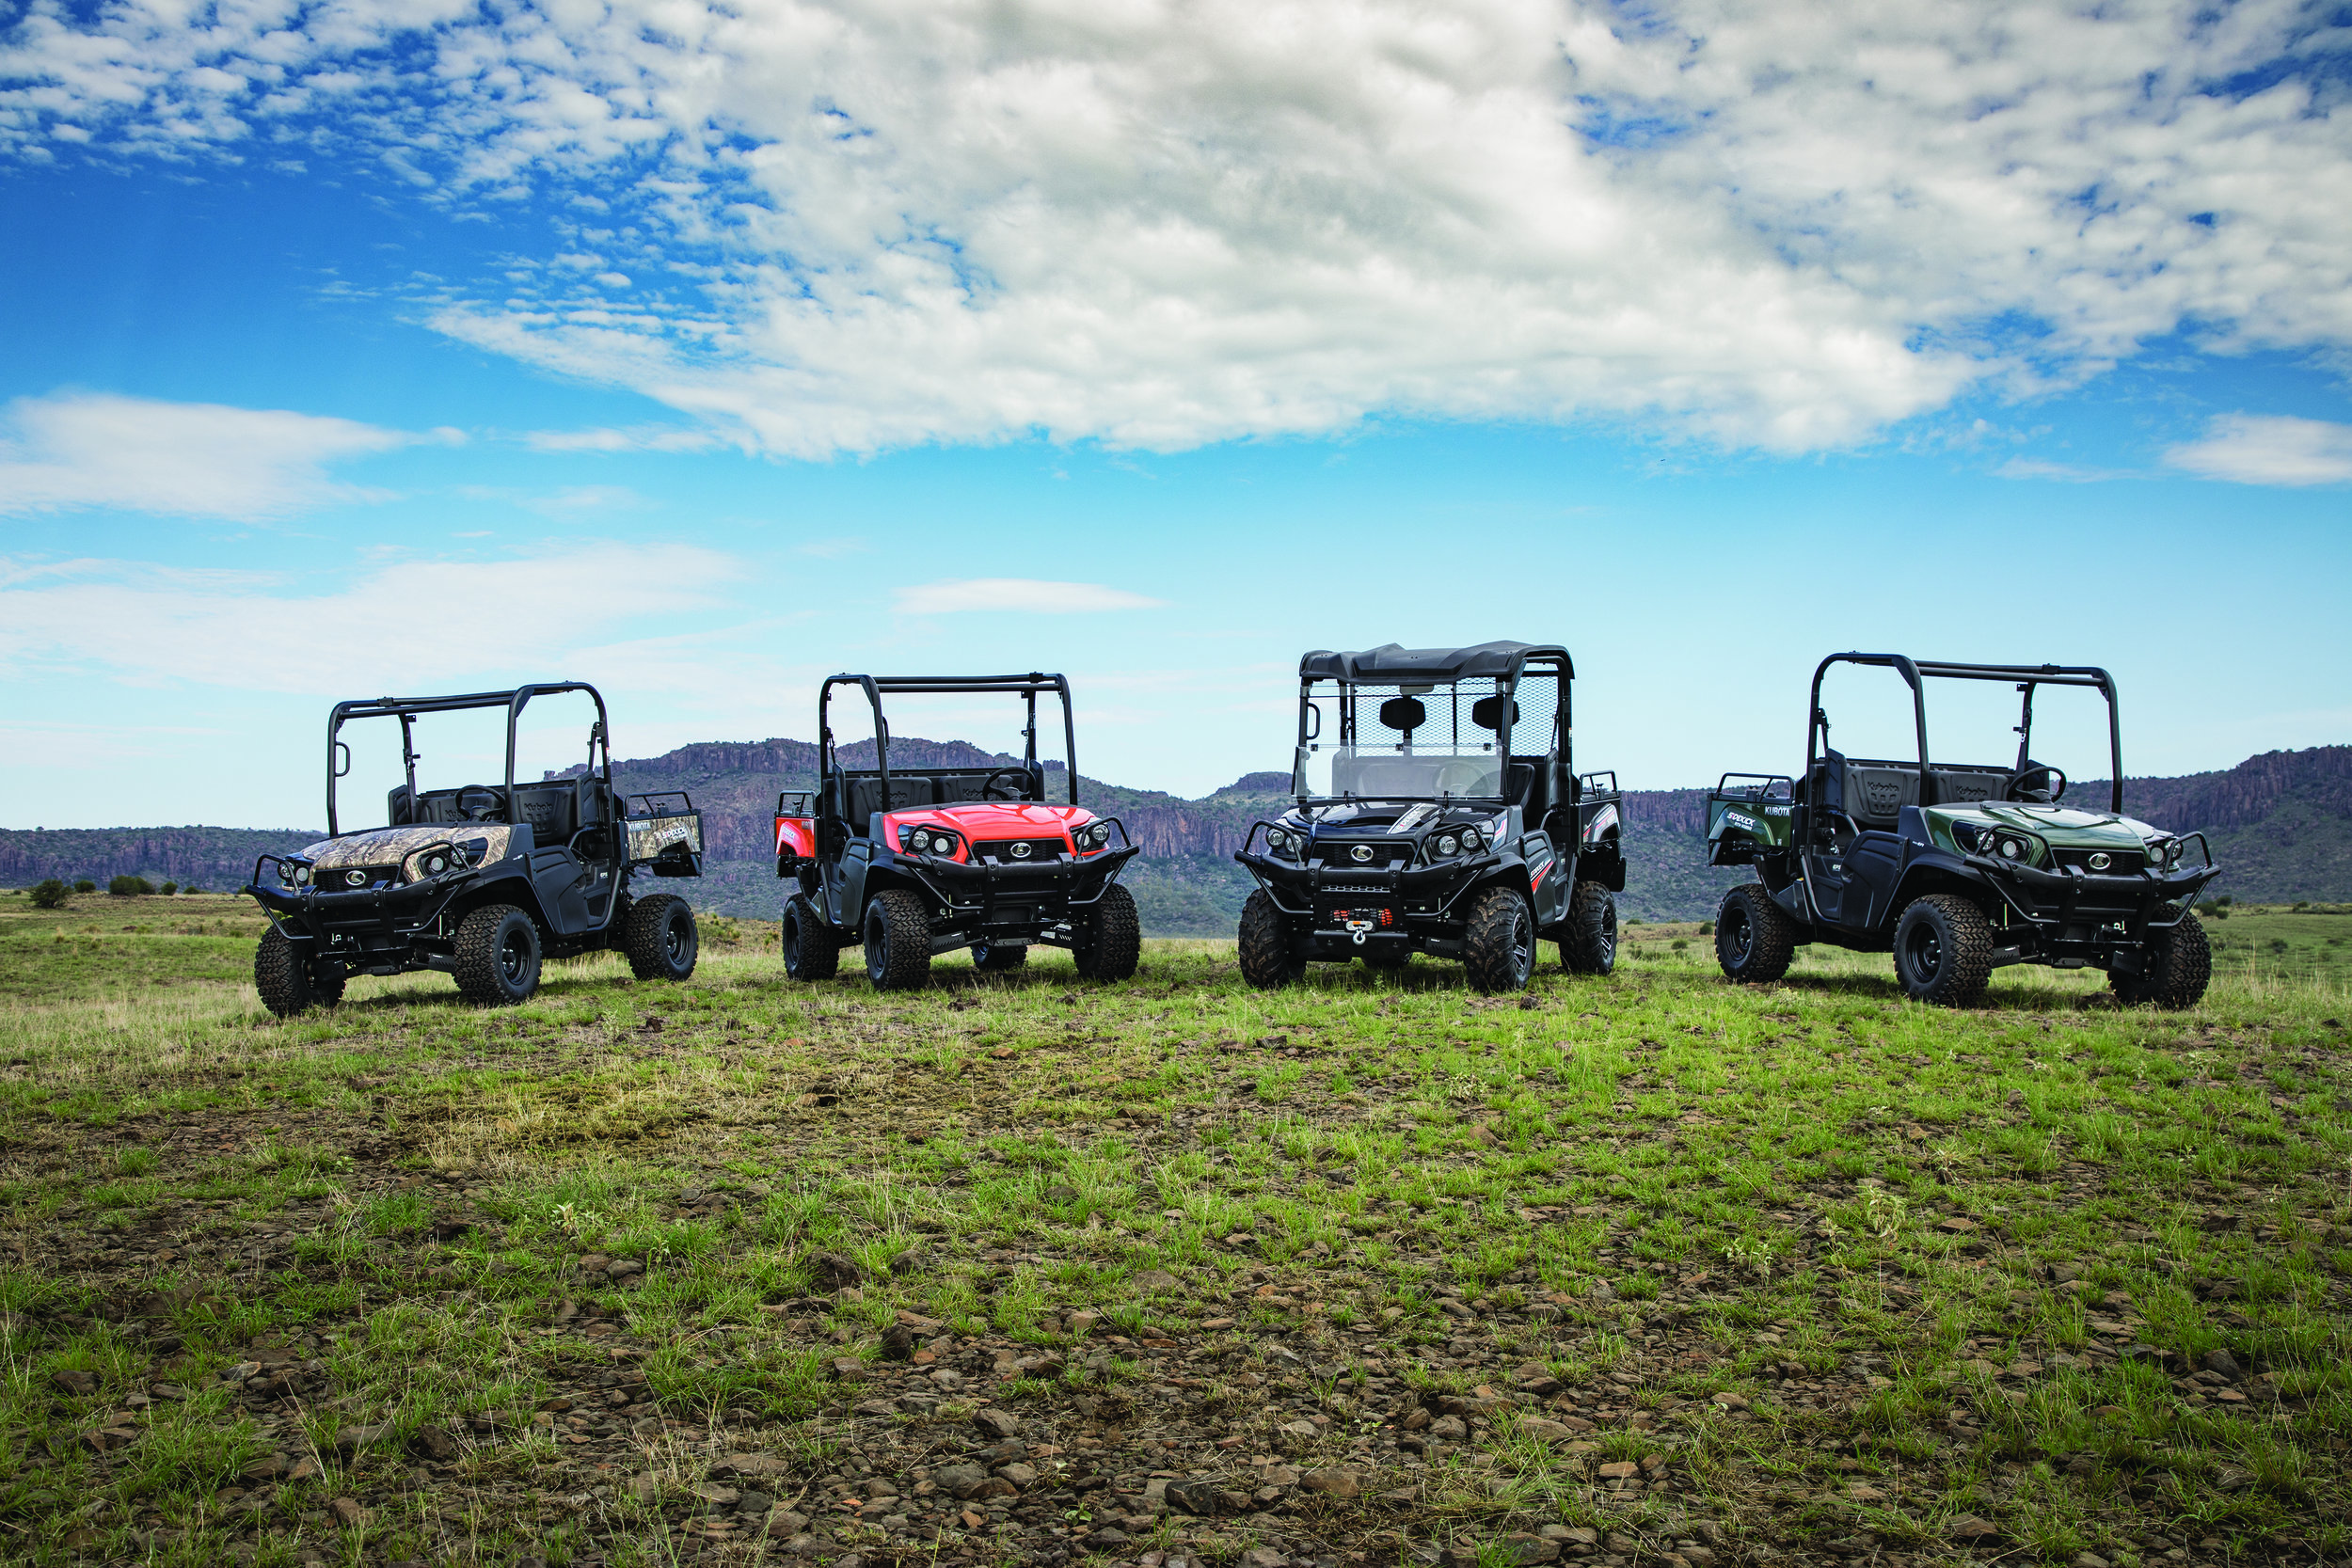 RTV's - Whether you need a utility vehicle for farming during the week, hunting on the weekend, or simply getting around your land more efficiently, the RTV Series is for you. These machines are ready to work, wherever work takes you.